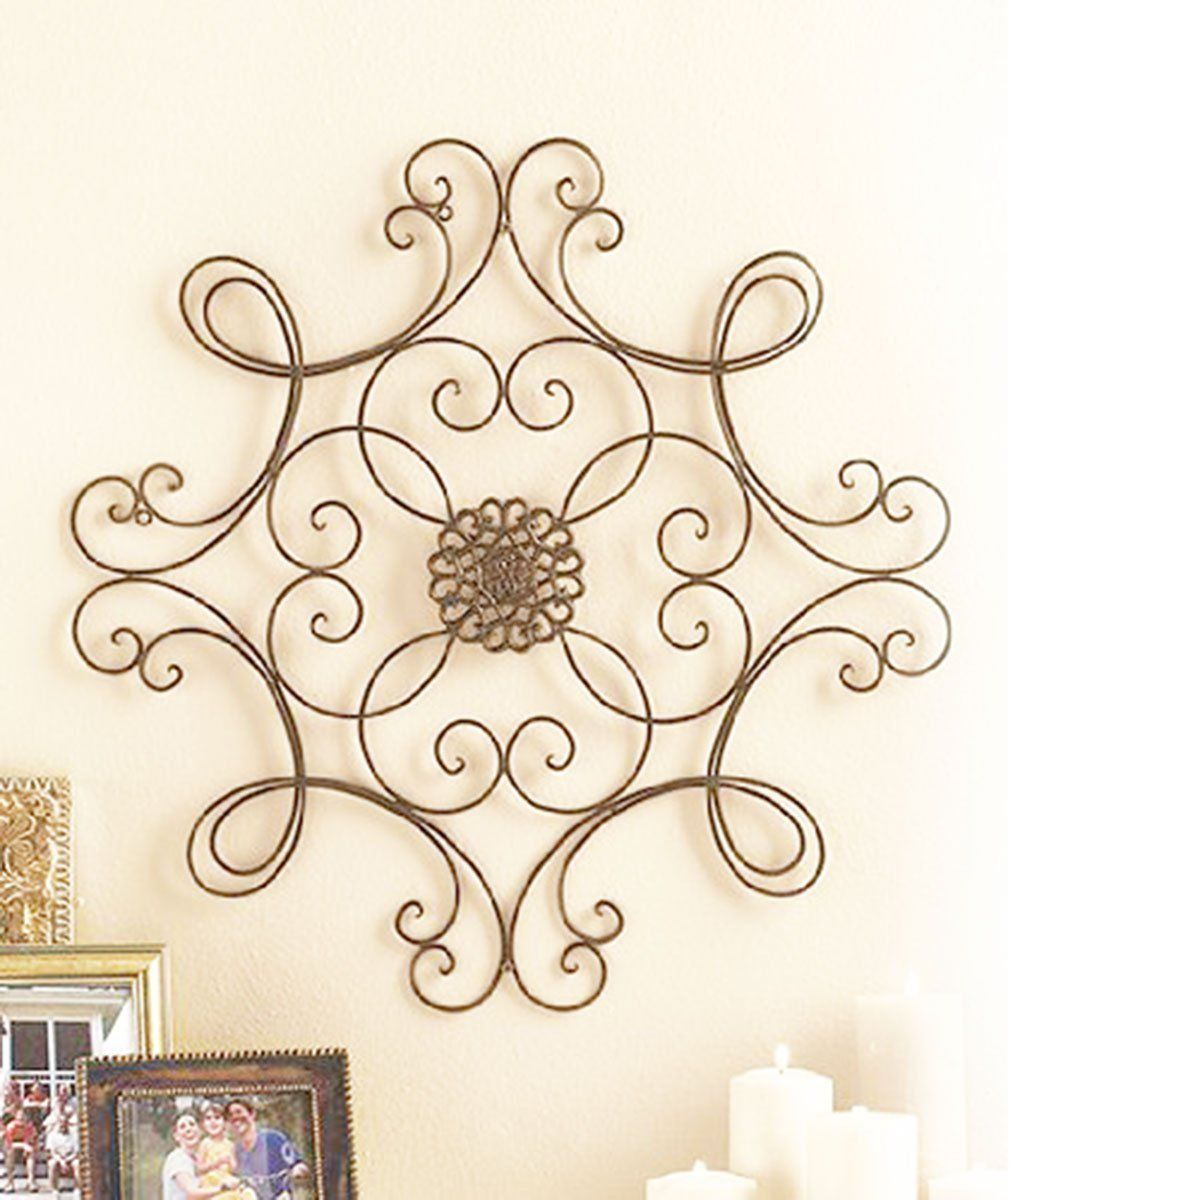 Square Scrolled Metal Wall Medallion Decor Httpswww.amazonsquarescrolledmetalmedalliondecordp